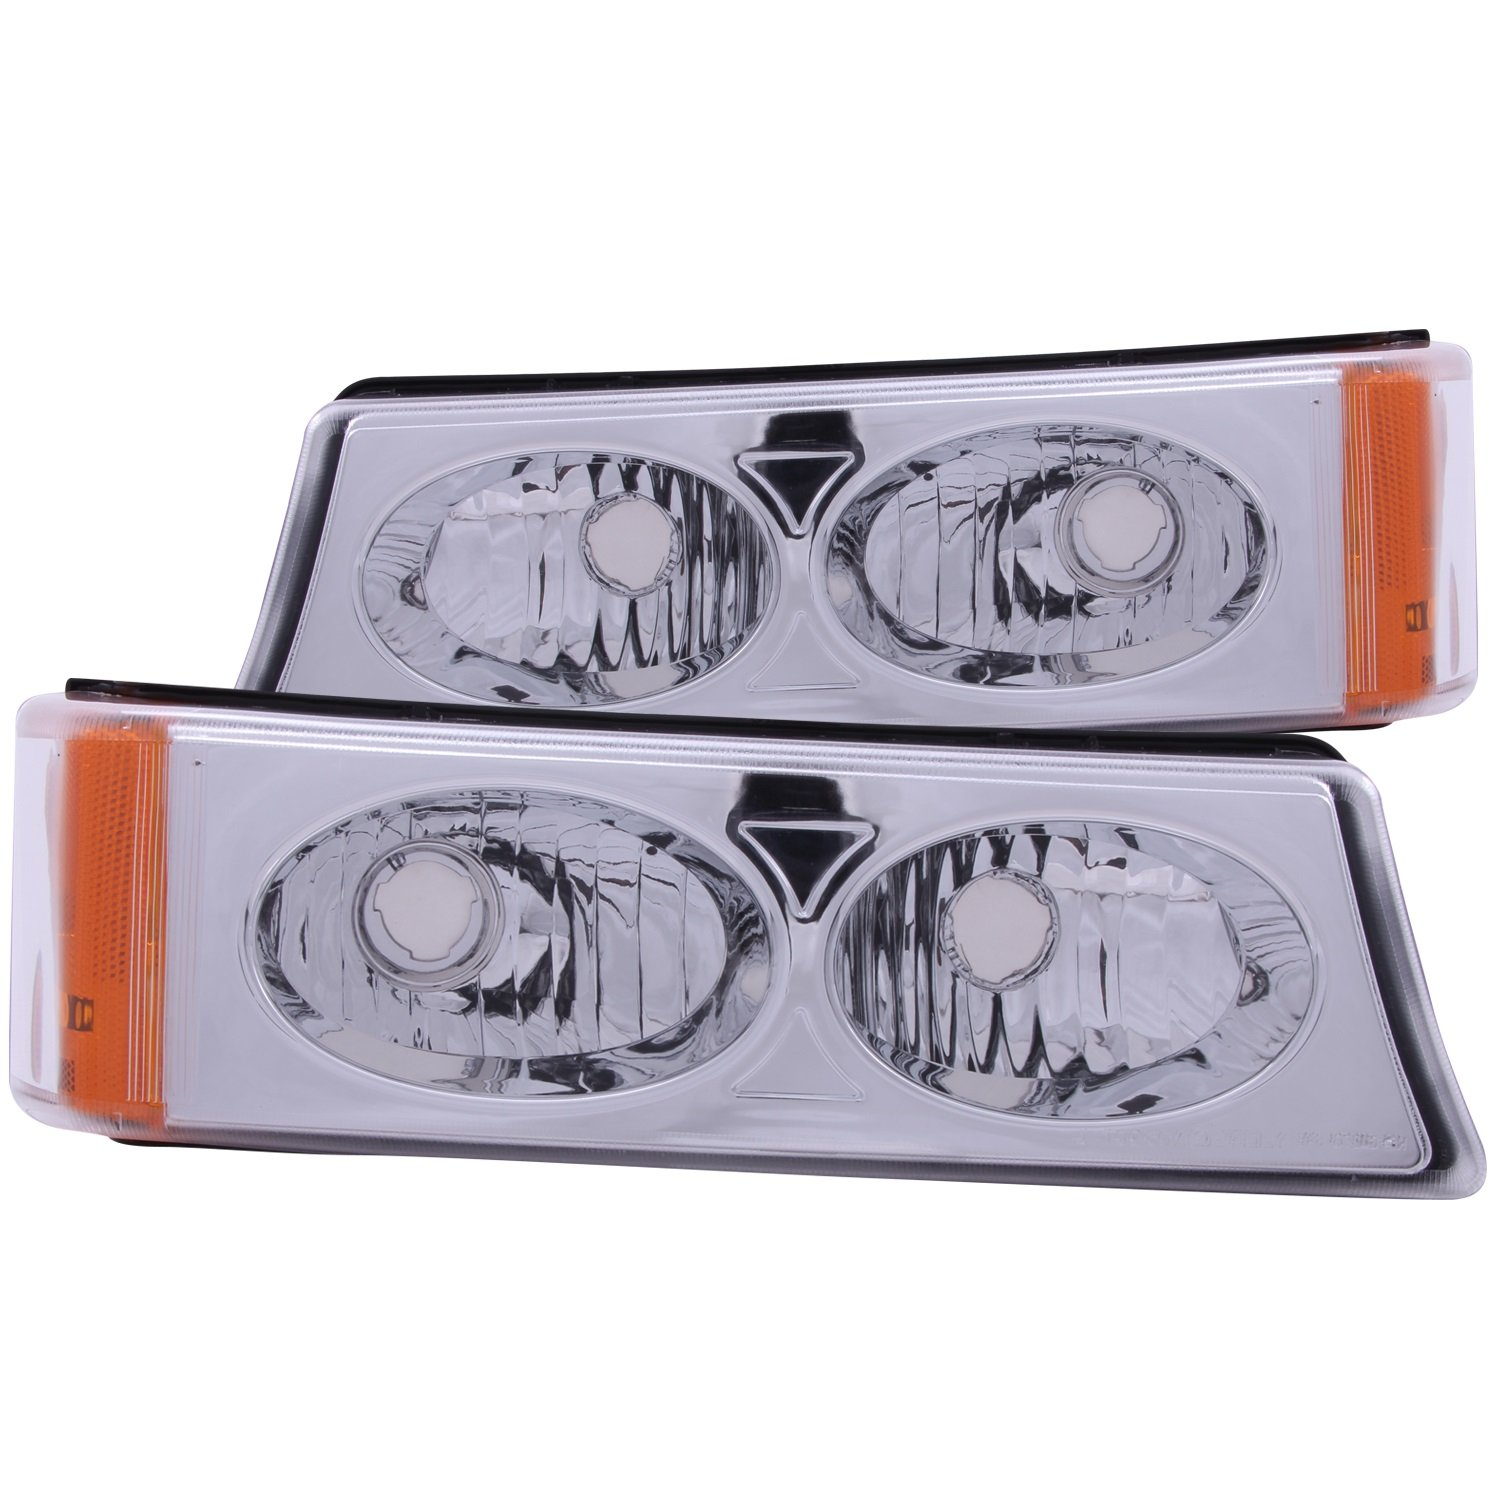 Anzo USA 511035 Chevrolet Avalanche/Silverado Chrome Crystal Lens Parking Light Assembly - (Sold in Pairs)